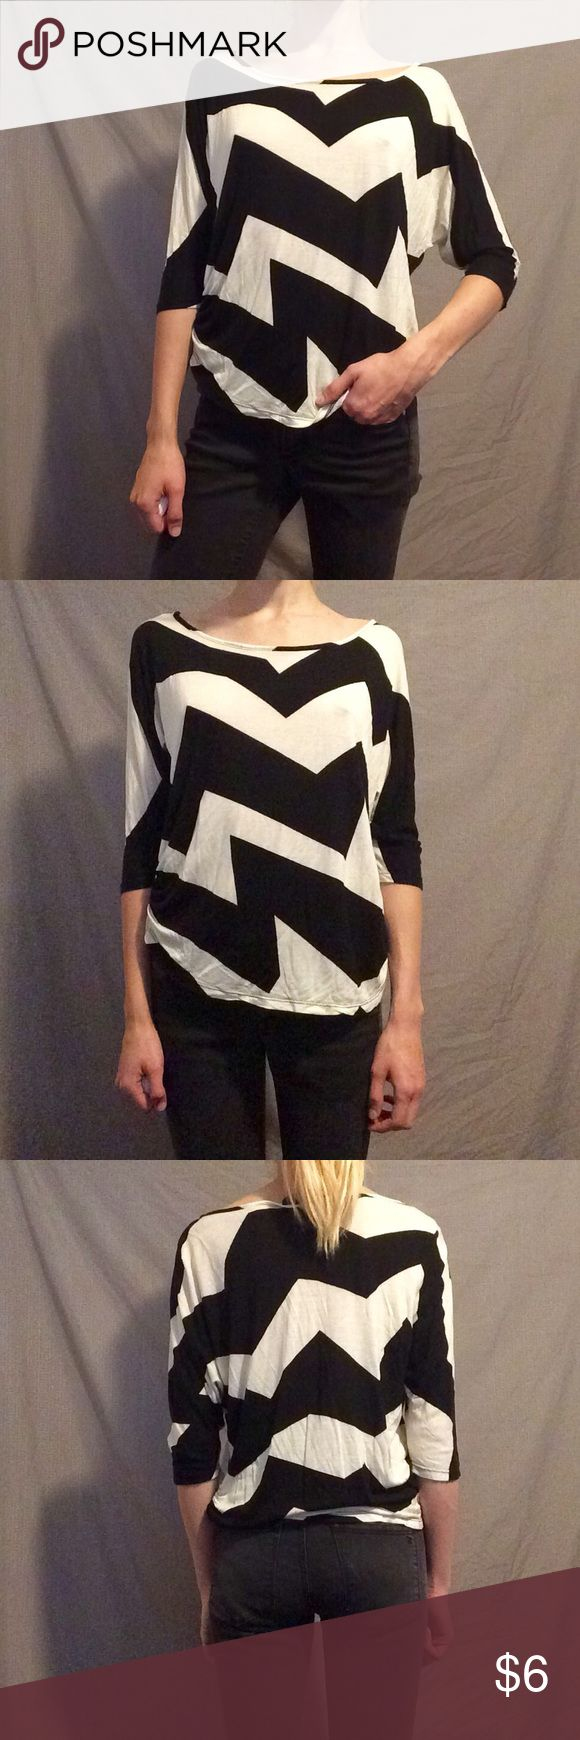 Black/White Crooked Chevron Blouse Stylish black/white half sleeve blouse with crooked chevron pattern Annabelle Tops Blouses